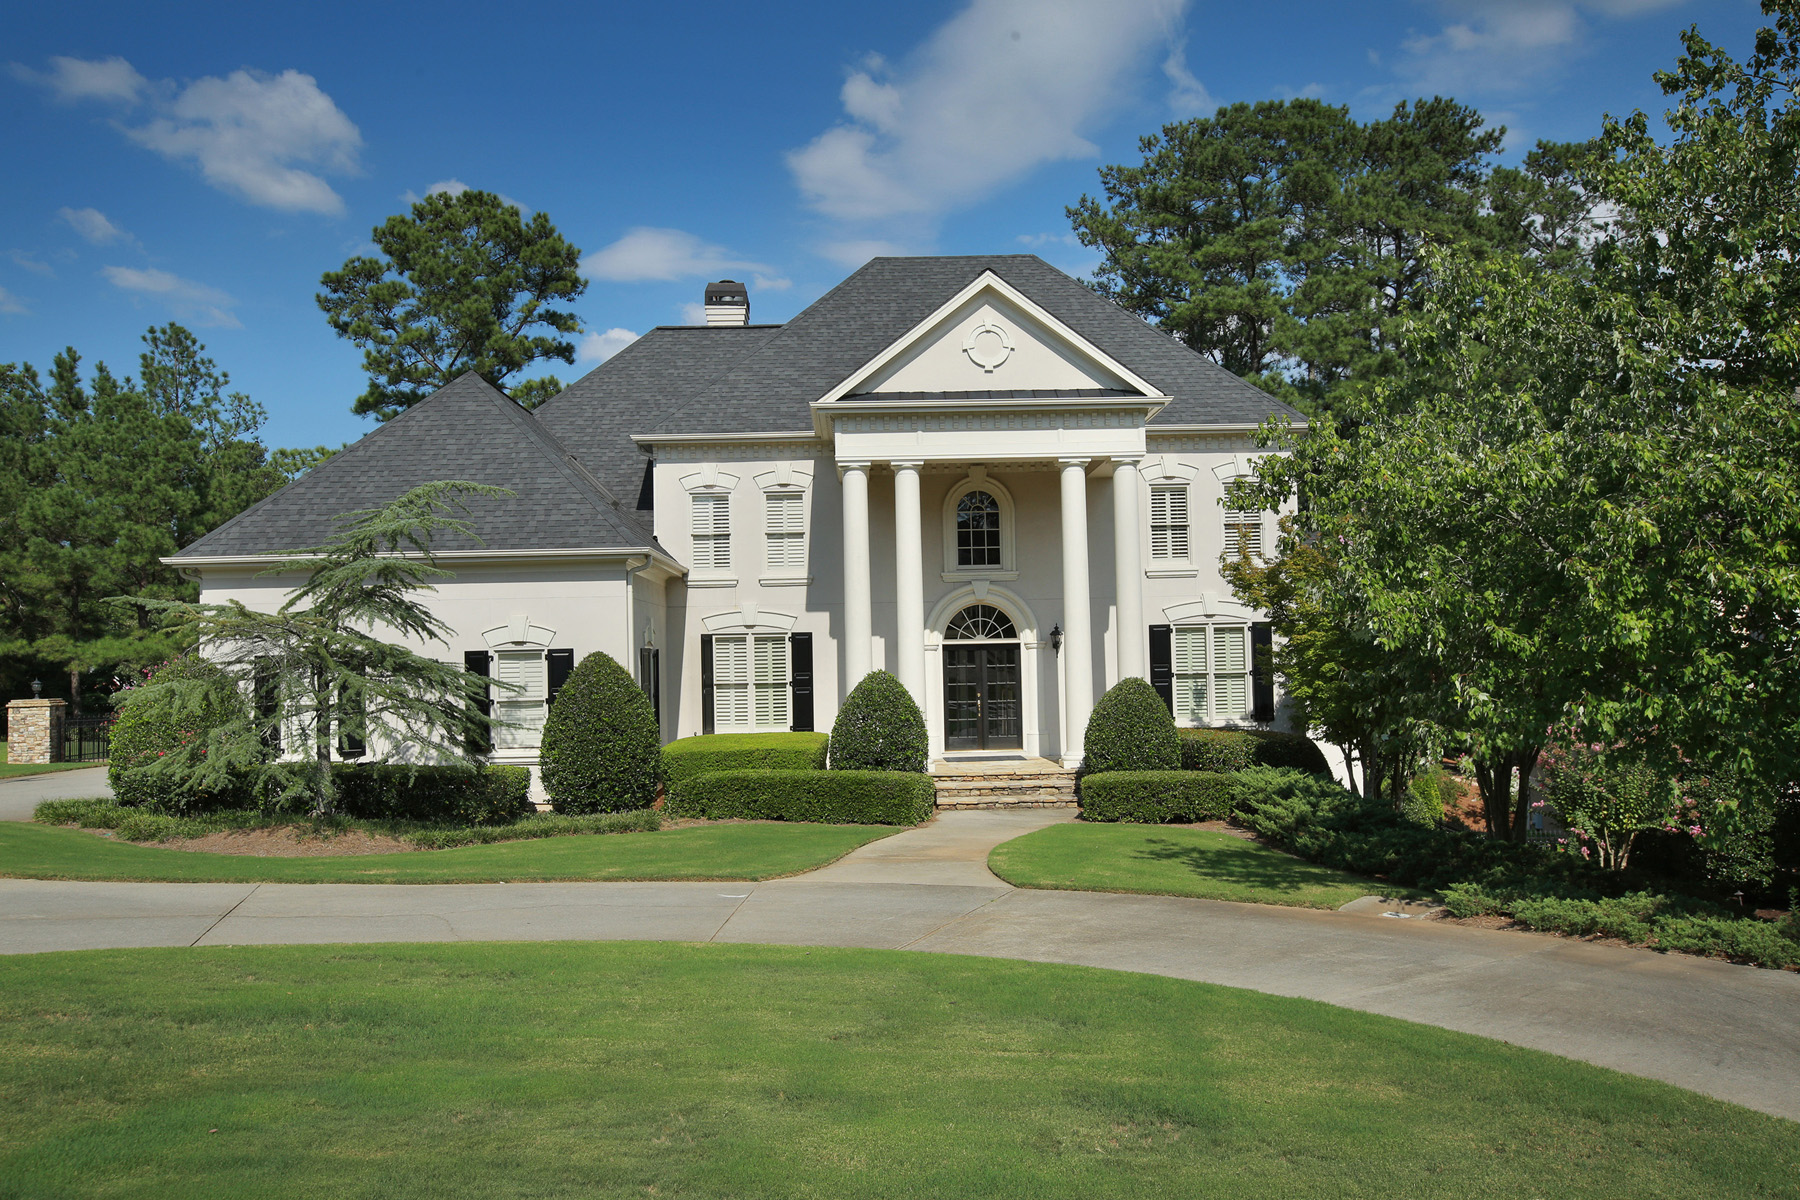 Single Family Home for Sale at Fabulous Grande Home On The Golf Course! 8035 Royal Saint Georges Ln Duluth, Georgia 30097 United States